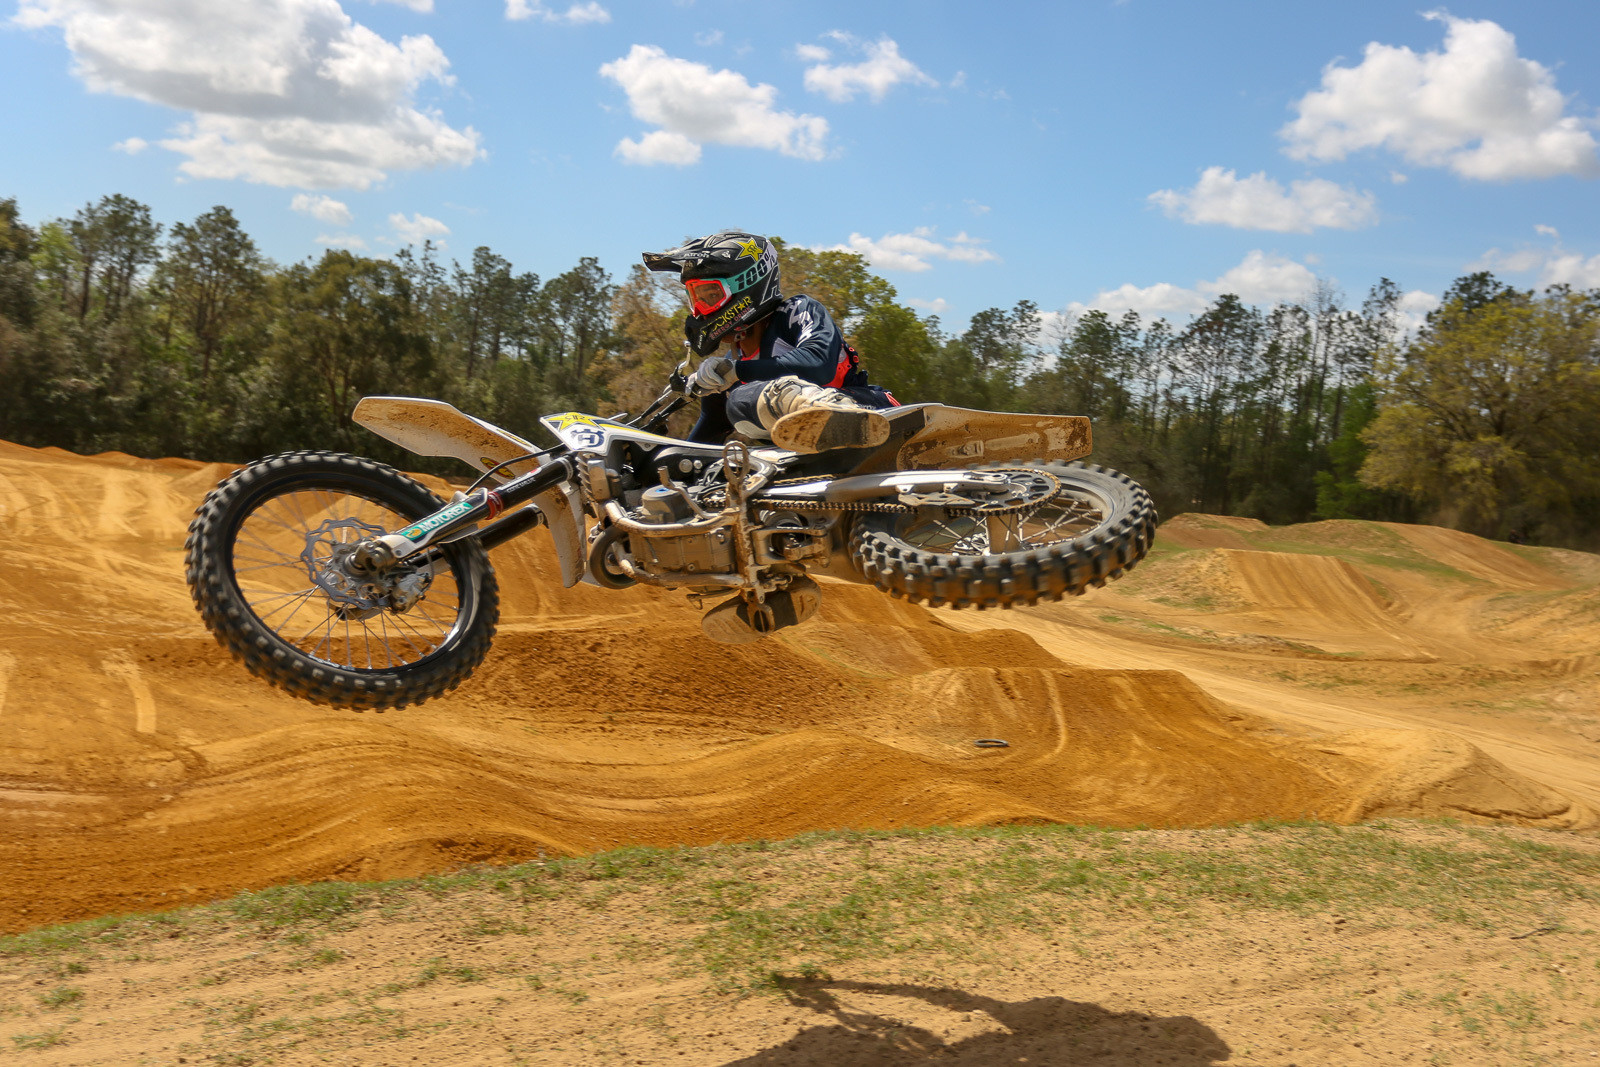 Jalek Swoll is getting ready for some of the big upcoming amateur events, and was laying down fast laps coated in heavy style.